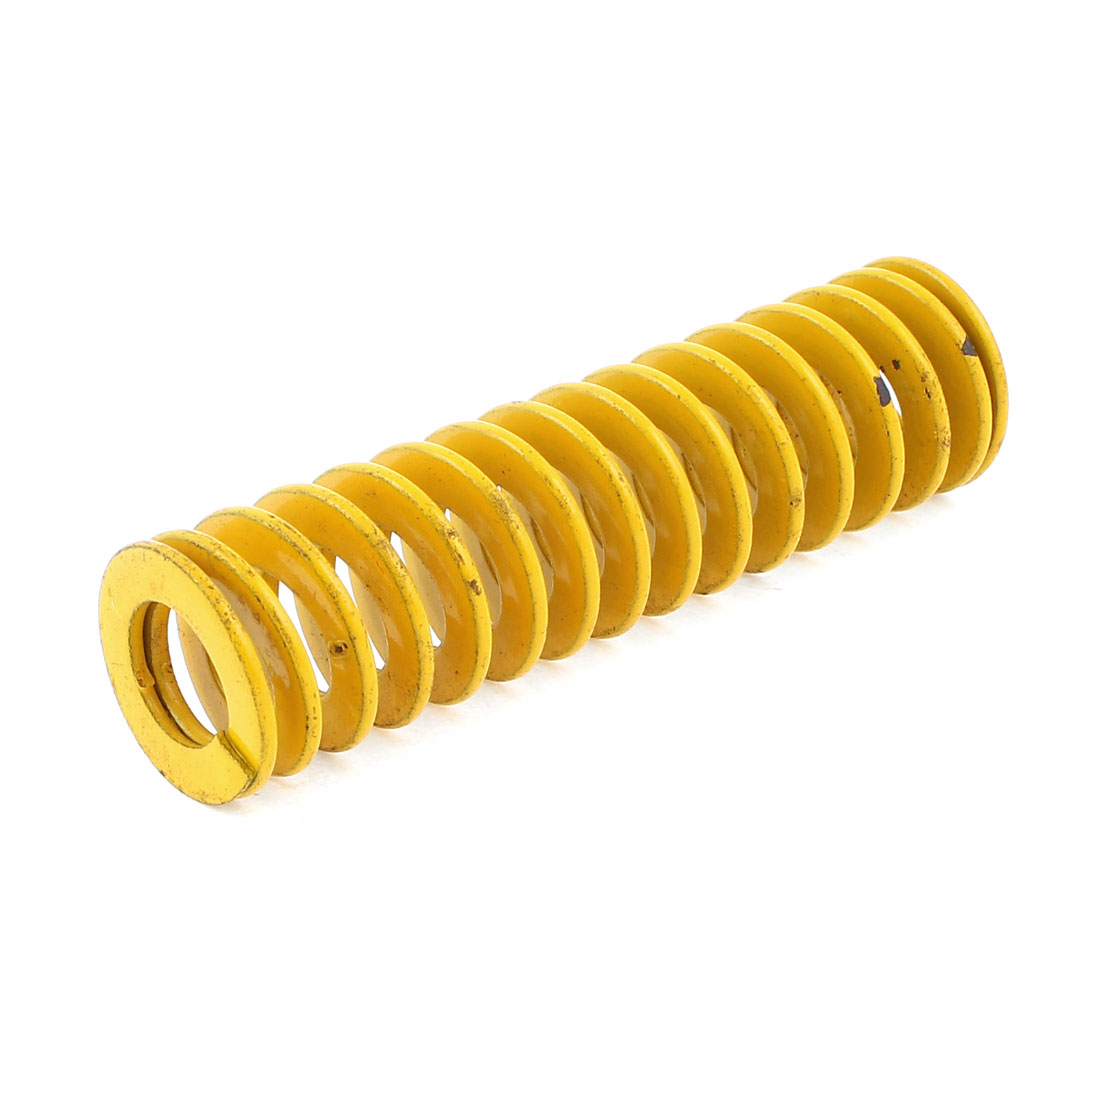 22mm x 11mm x 80mm Yellow Chromium Alloy Steel Compression Die Spring